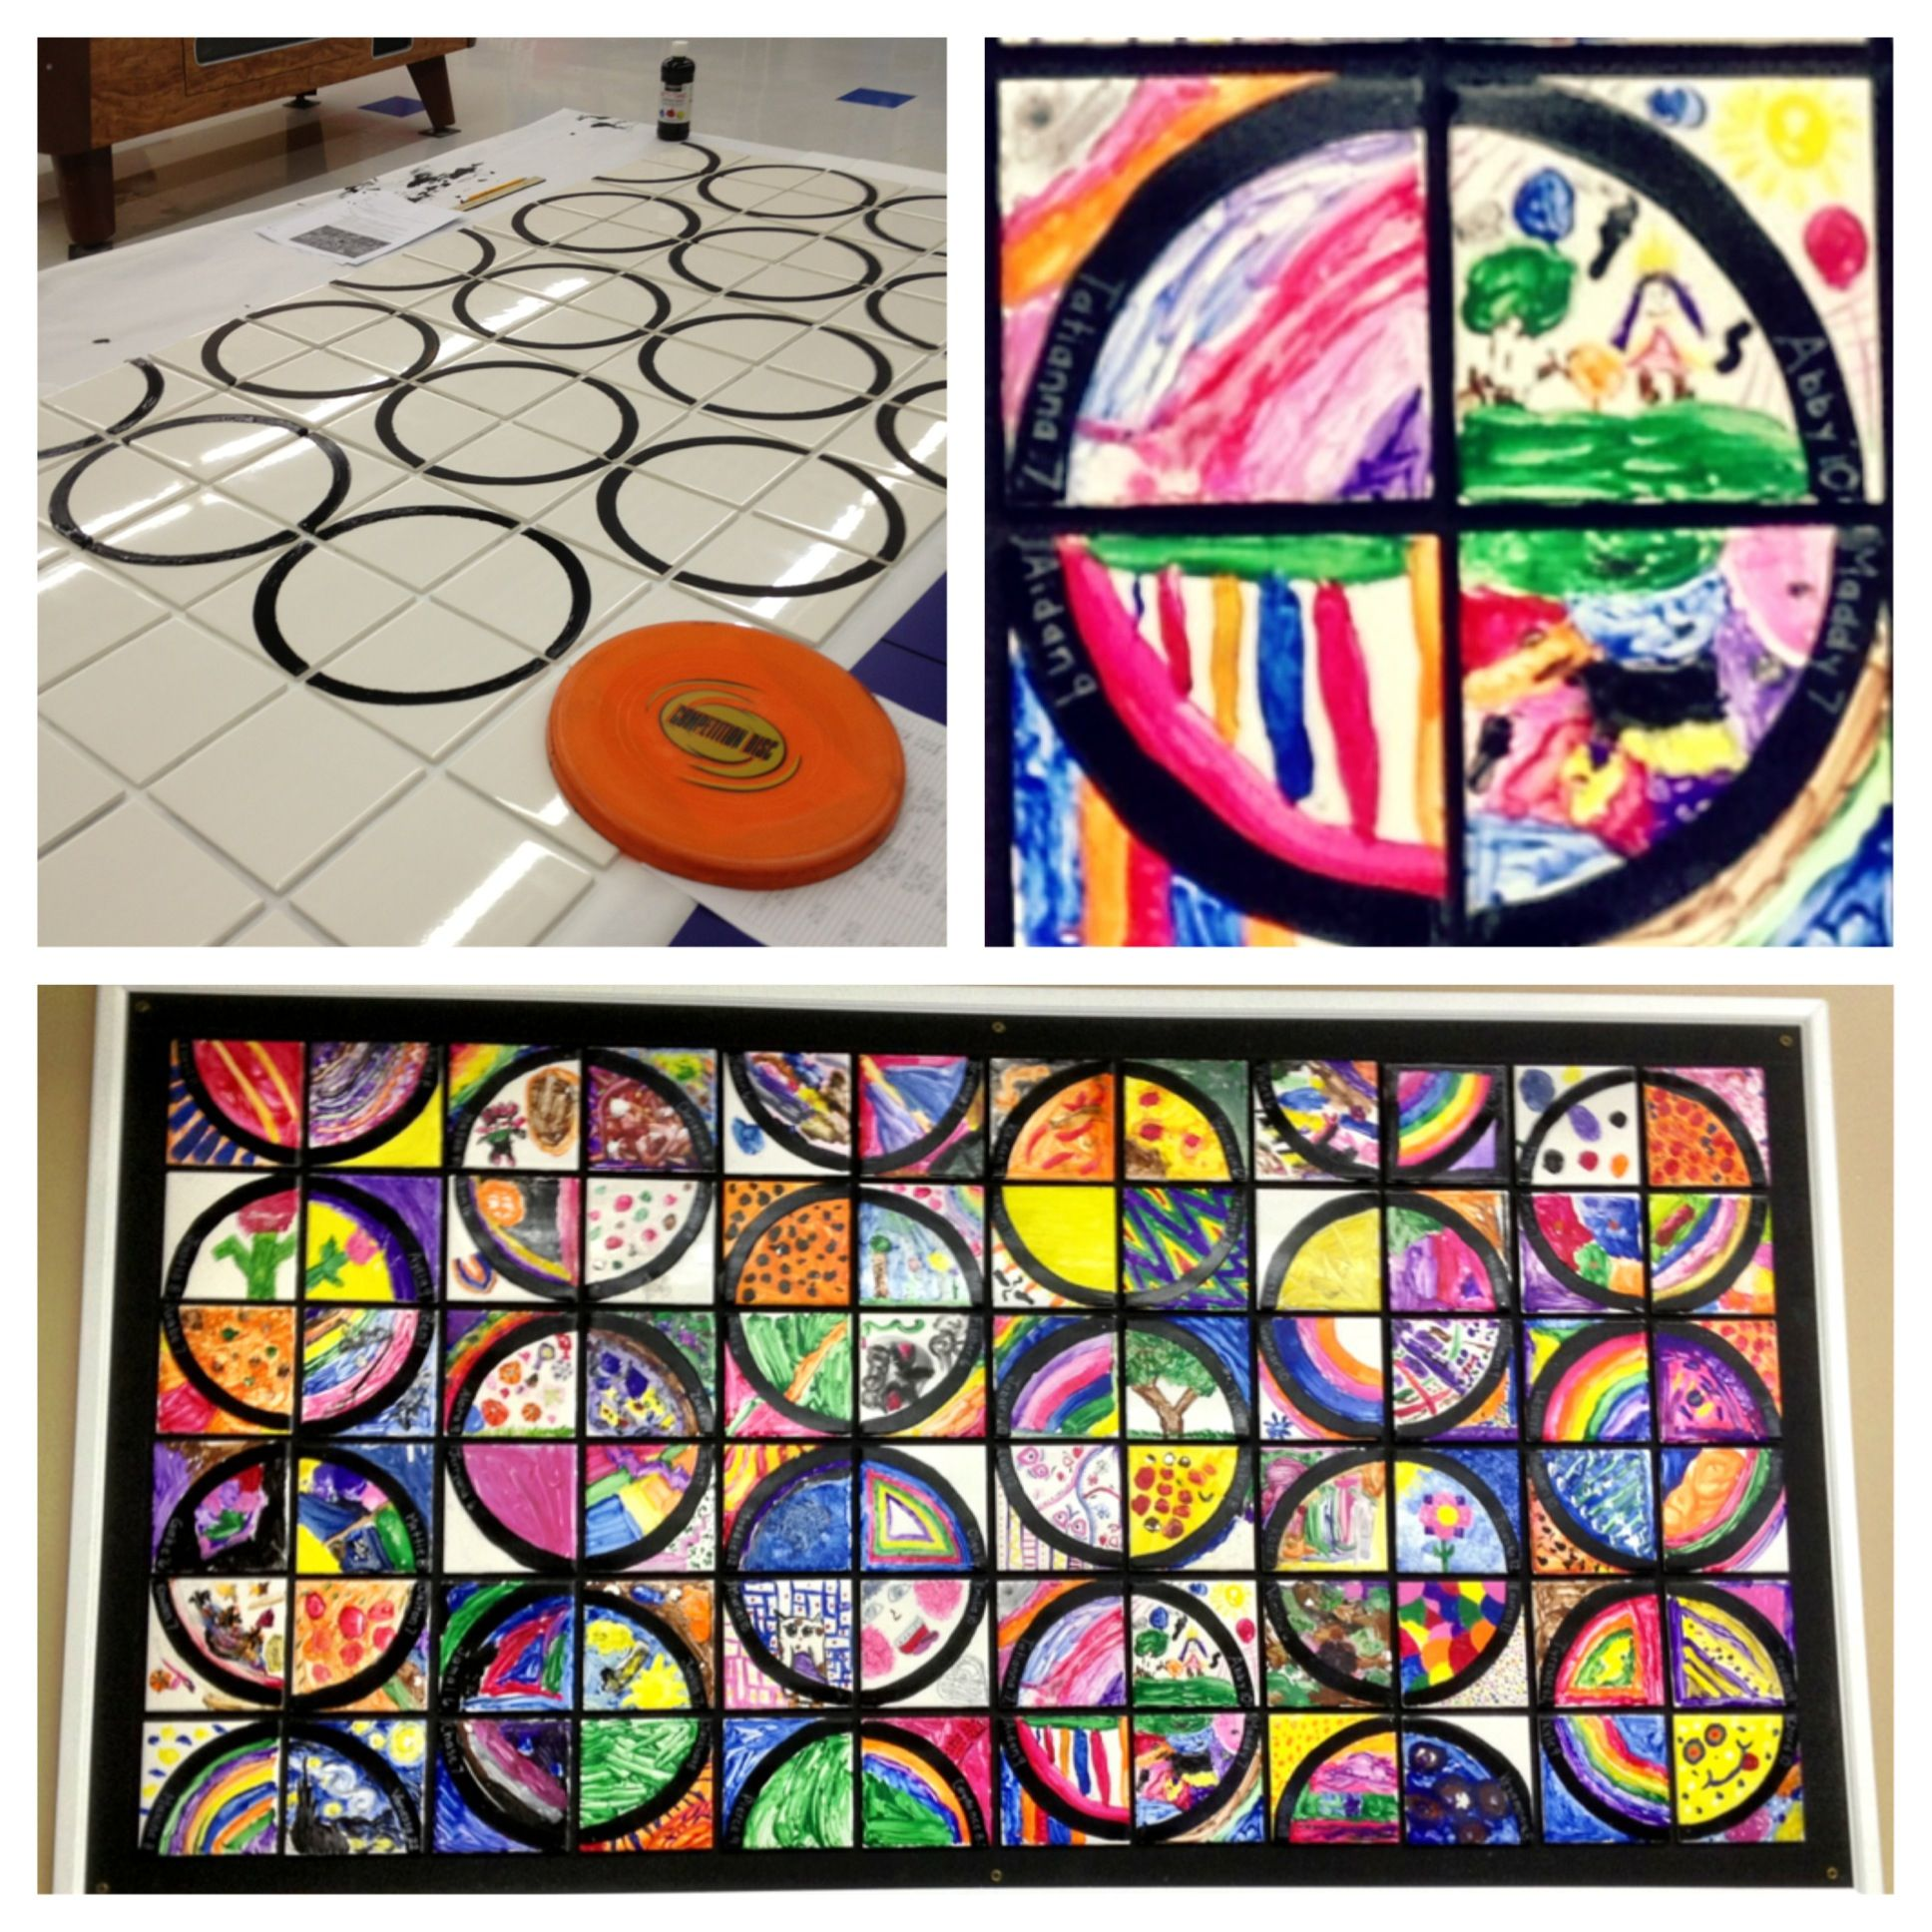 Details about hassam garden painting ceramic bathroom tile murals 2 - Collaborative Circle Student Mural 6x6 White Ceramic Tiles From Menards 20 For A Box Of 50 Tiles First Trace Circles Around A Frisbee With Black Paint